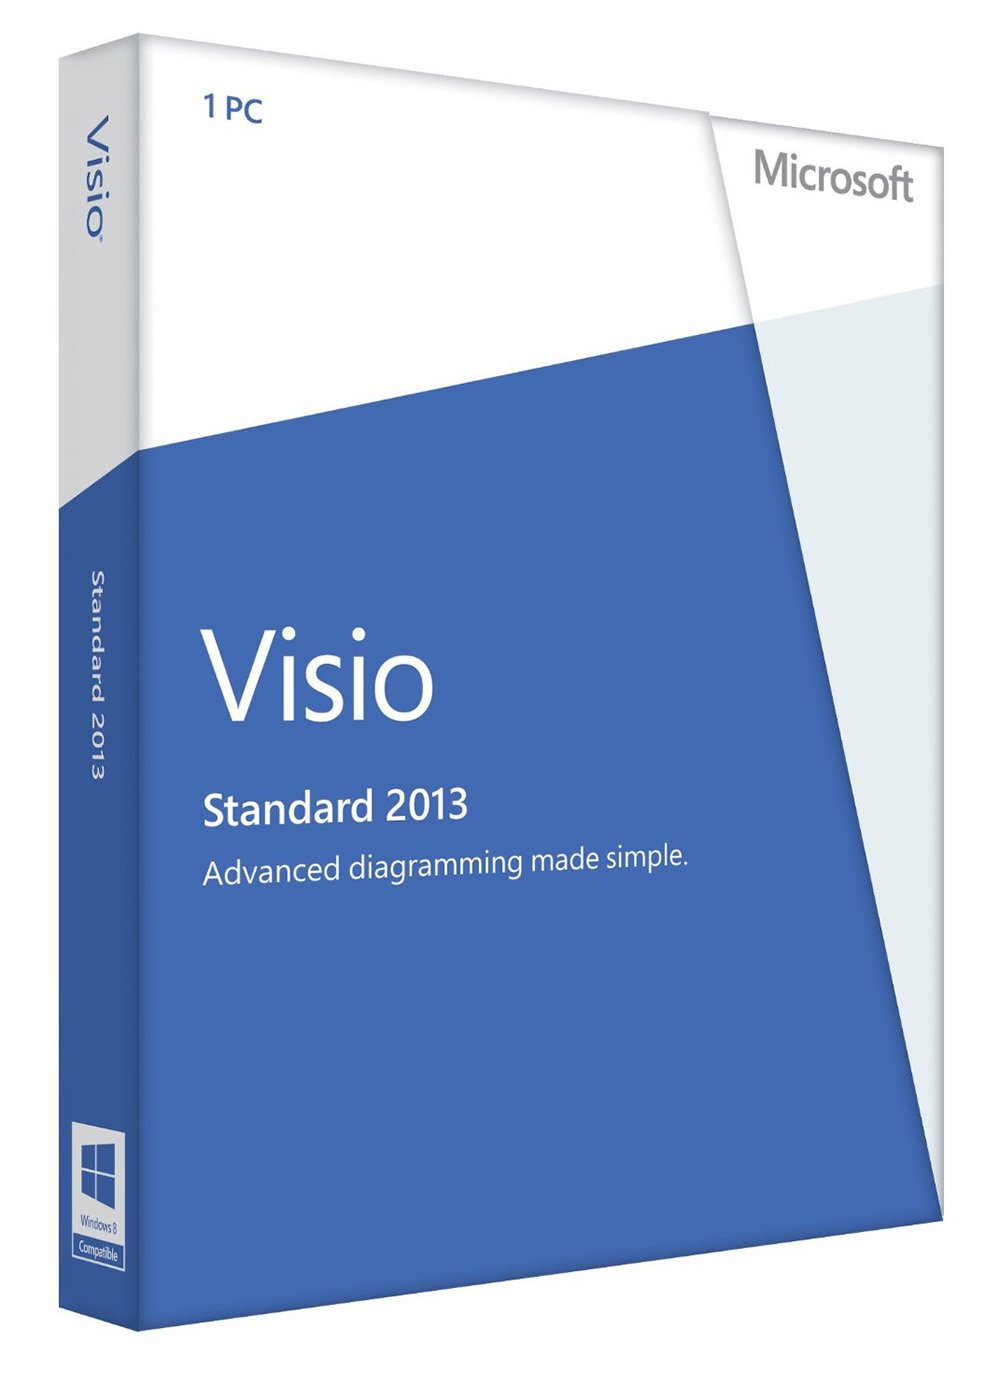 visio std 2013  Amazon.com: Microsoft Visio Standard 2013 Key Card (No Disc): Software